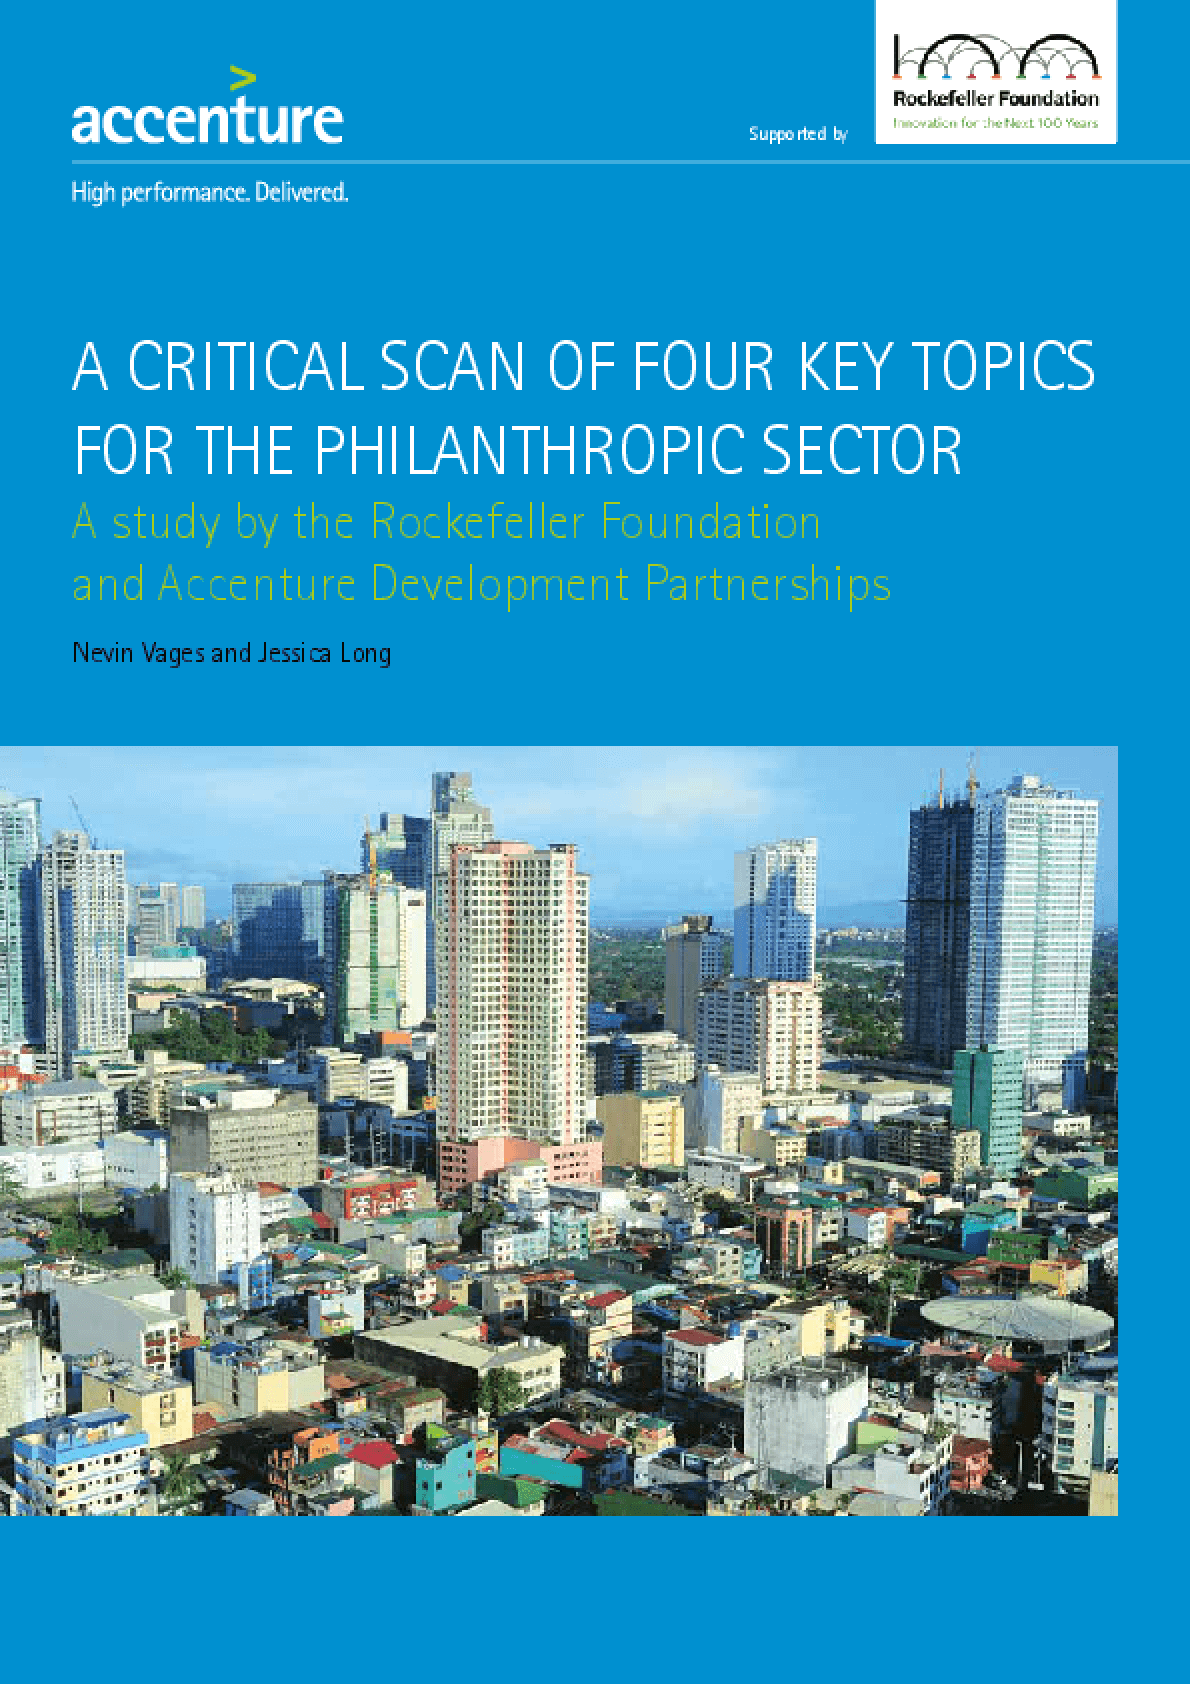 A Critical Scan of Four Key Topics for the Philanthropic Sector: A study by the Rockefeller Foundation and Accenture Development Partnerships